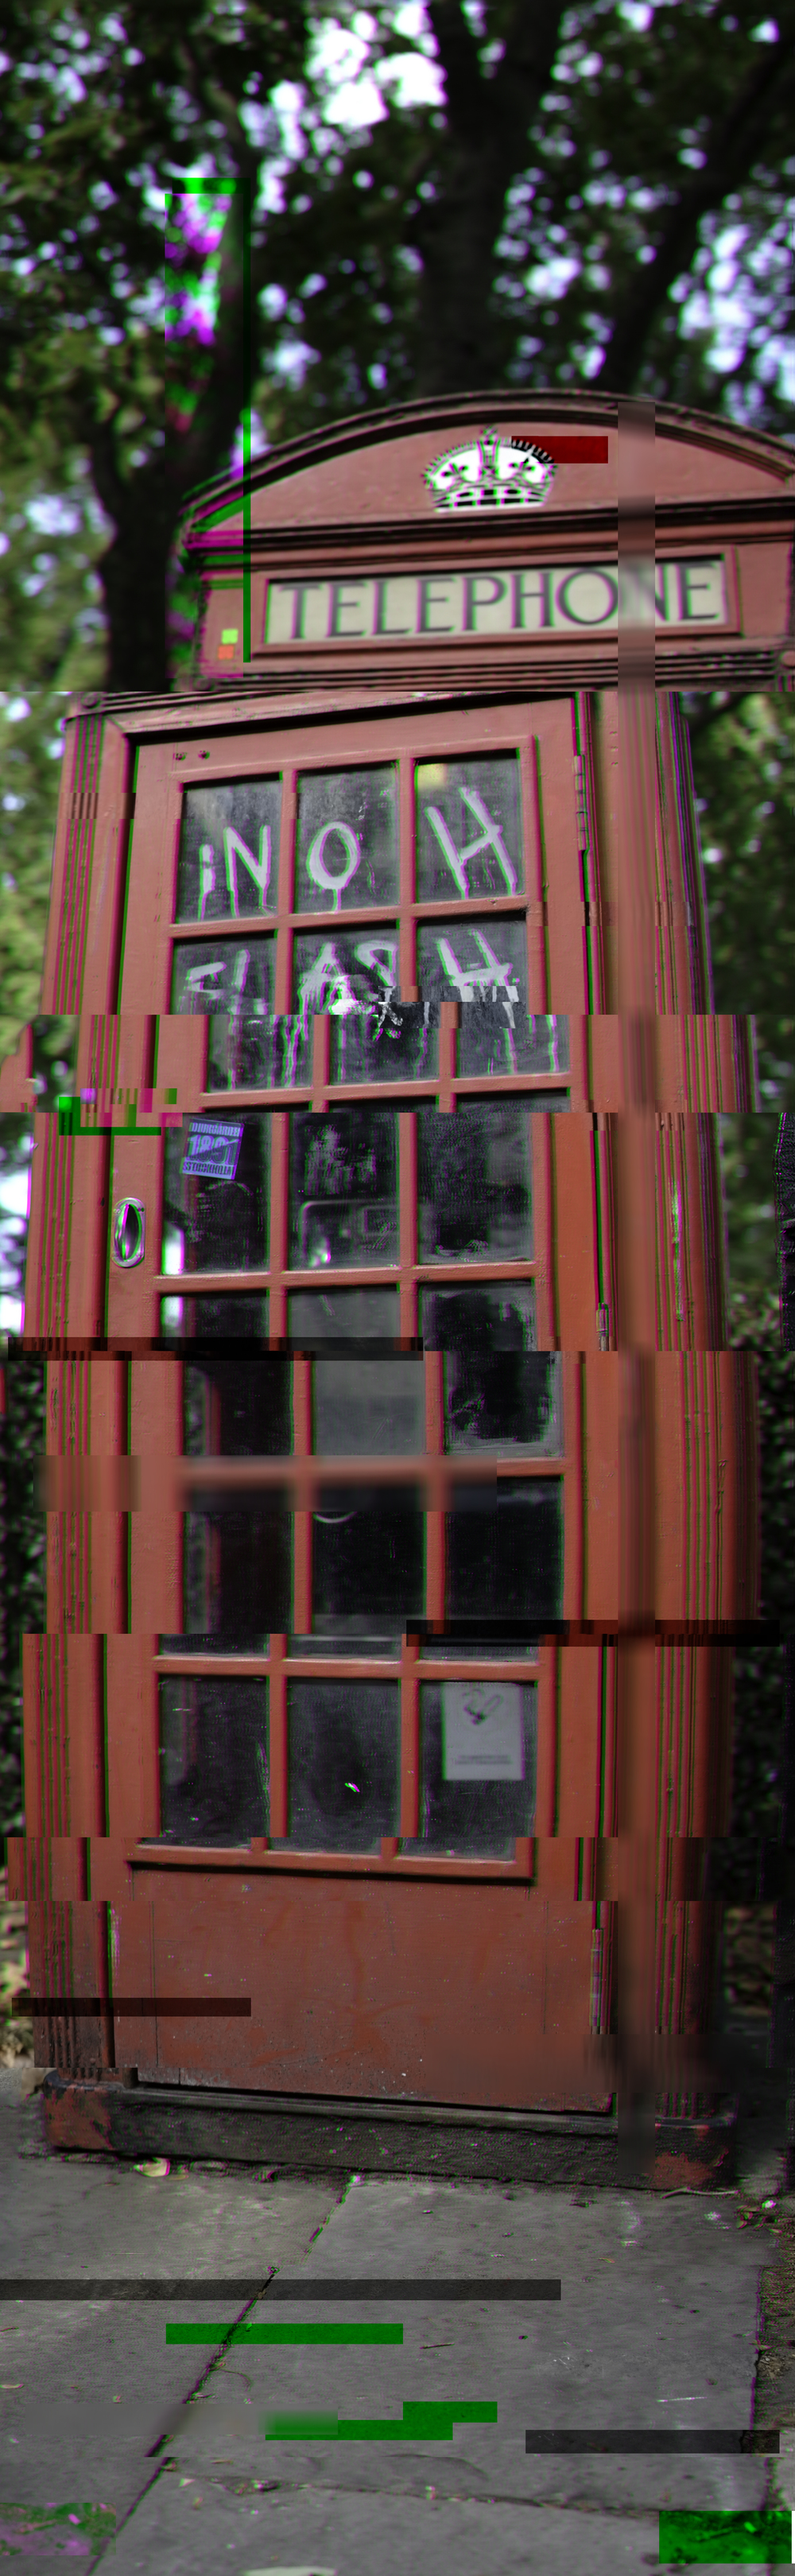 telephone_box.jpg